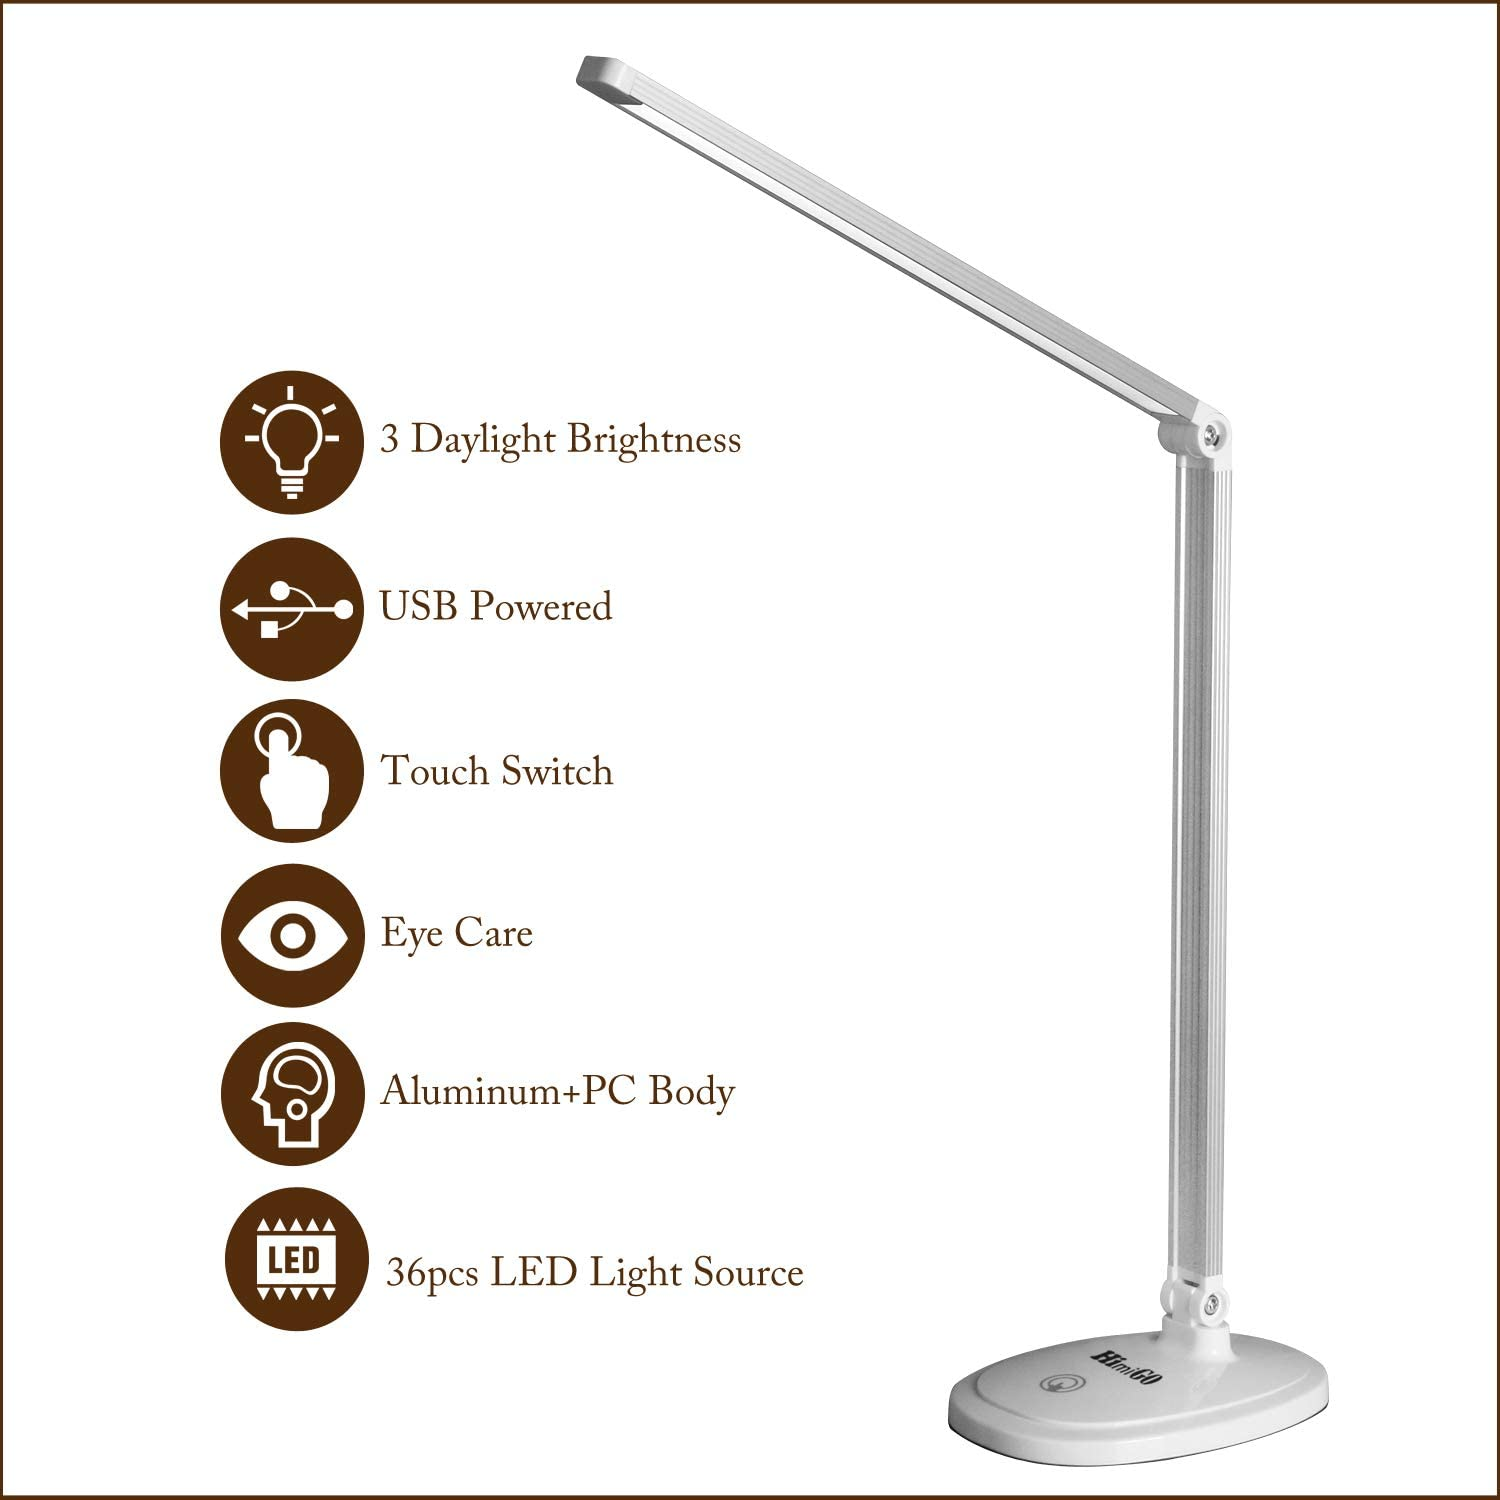 LED Desk Lamp, Eye-Caring Table Lamps,Office Lamp, Touch Control Function, USB Powered Lamp,Foldable Portable Lamp for Reading Studying Working,White,Himigo